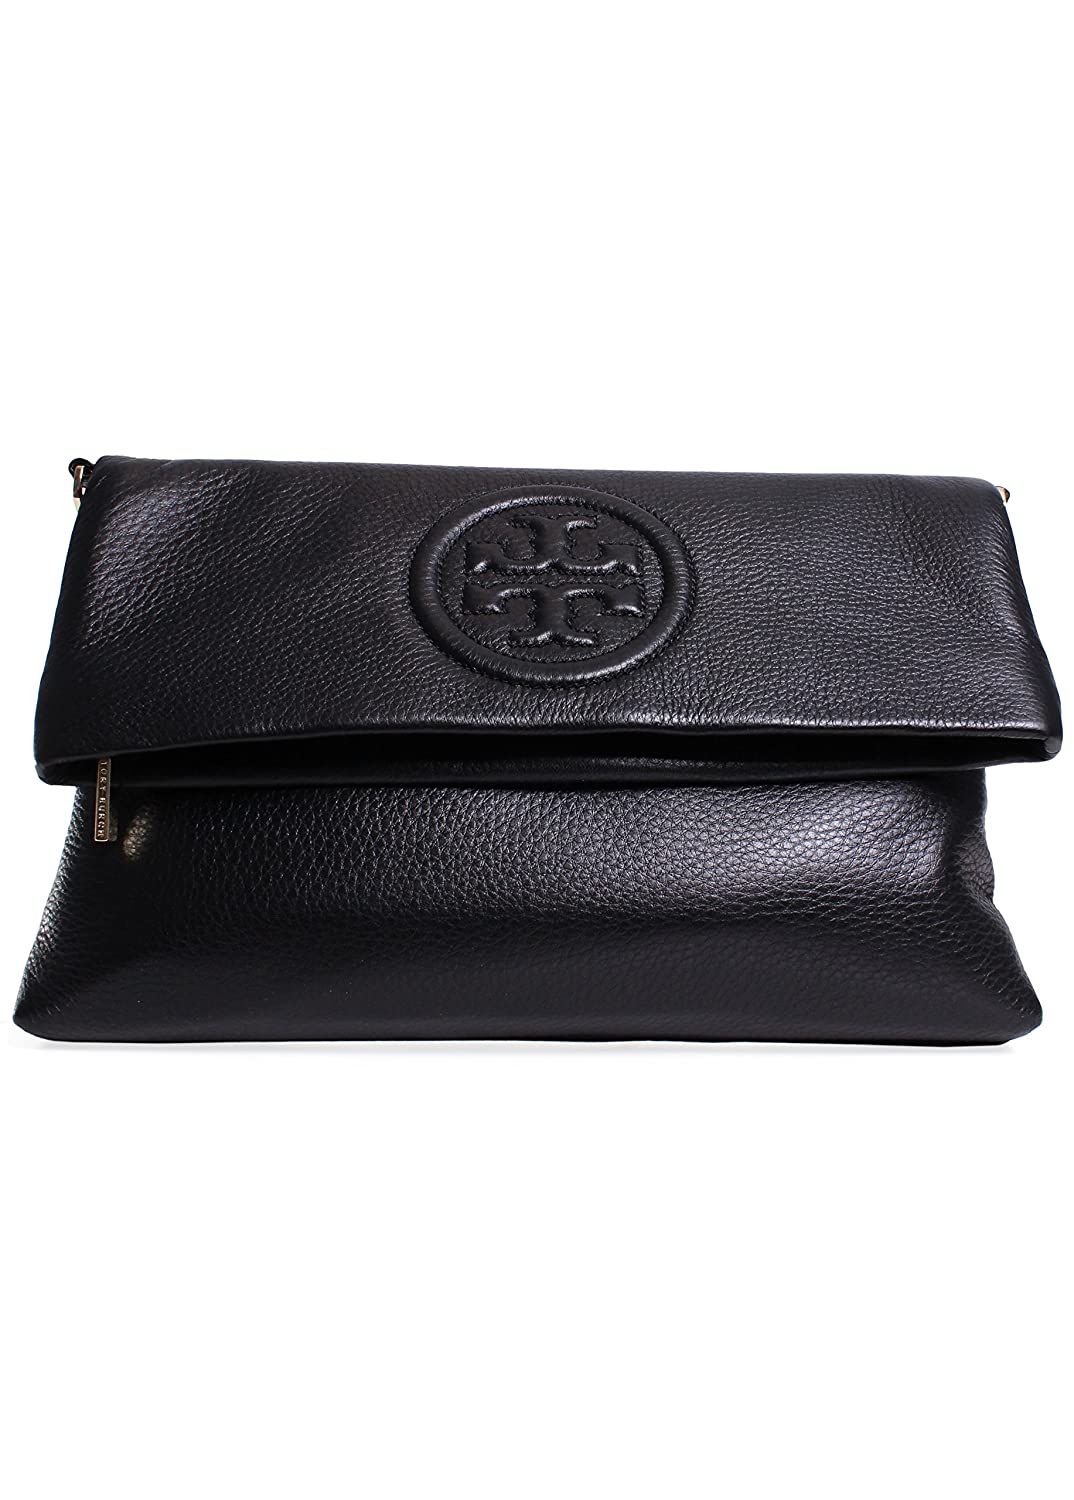 Tory Burch Bombe Foldover Clutch in Black